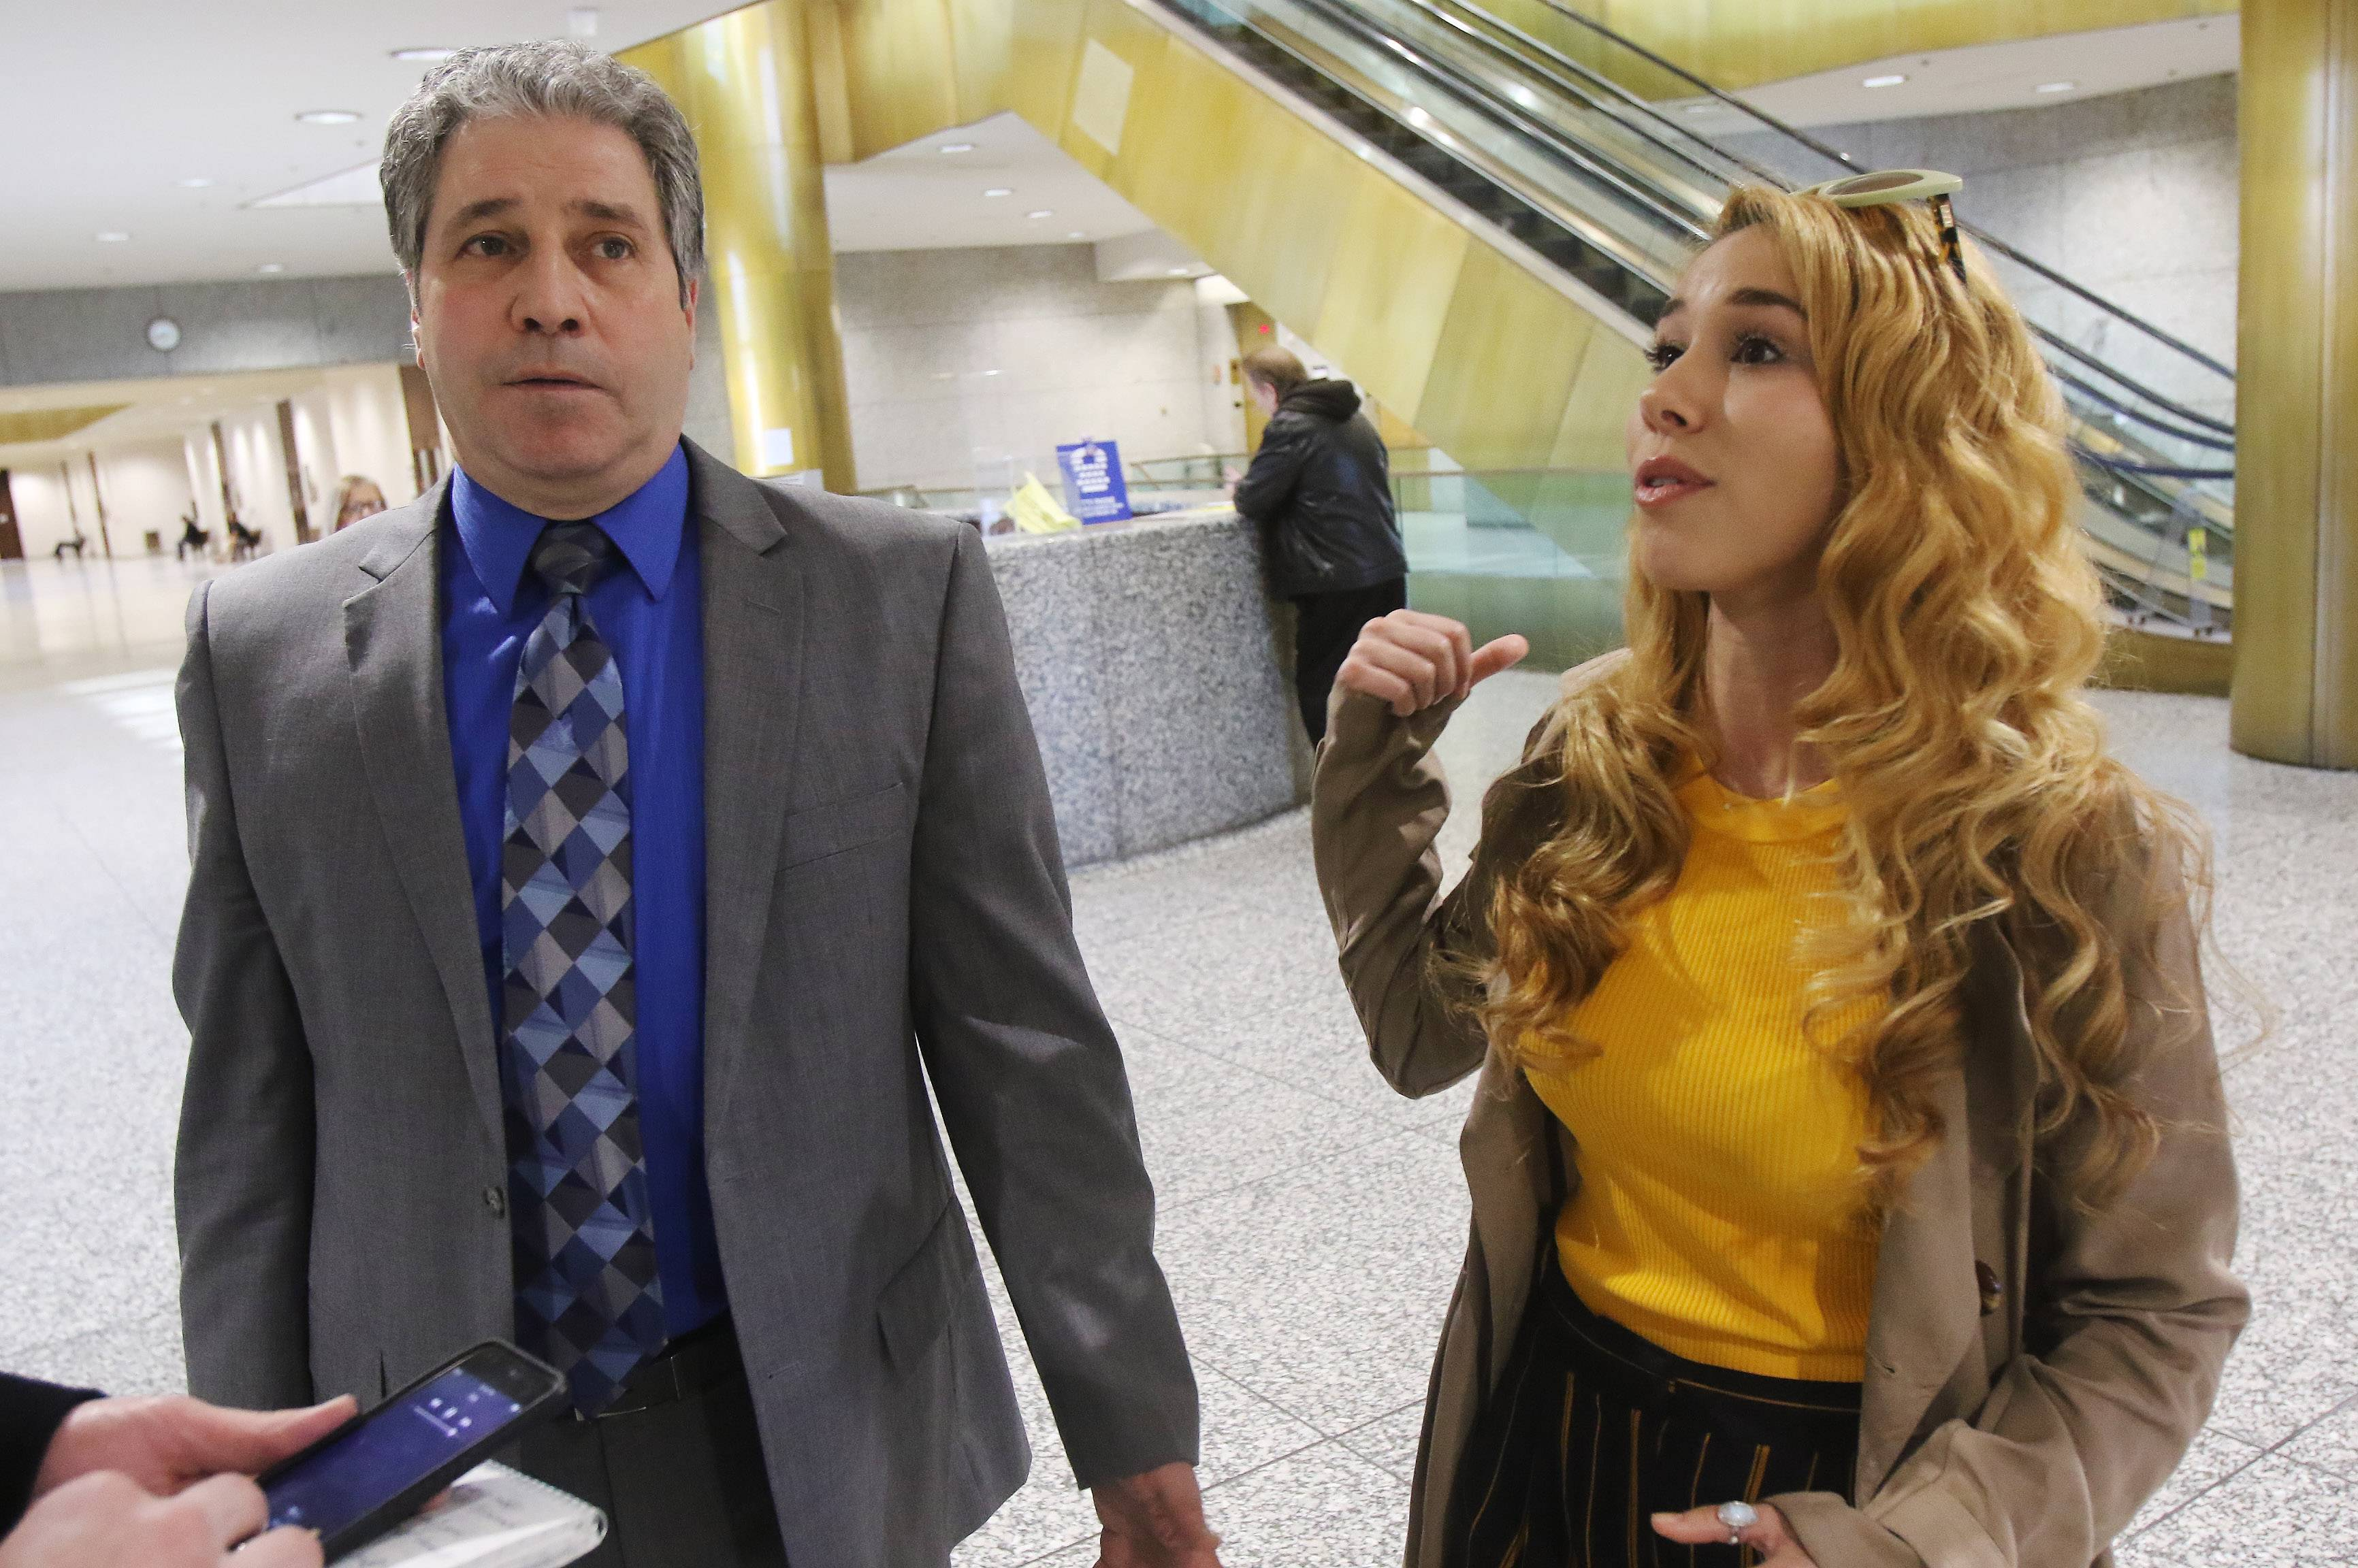 Haley Reinhart and attorney Carmine Trombetta speak with the media Monday after a Cook County judge found her guilty of battery. The local ordinance violation stemmed from a July 8 fracas at a Palatine bar.